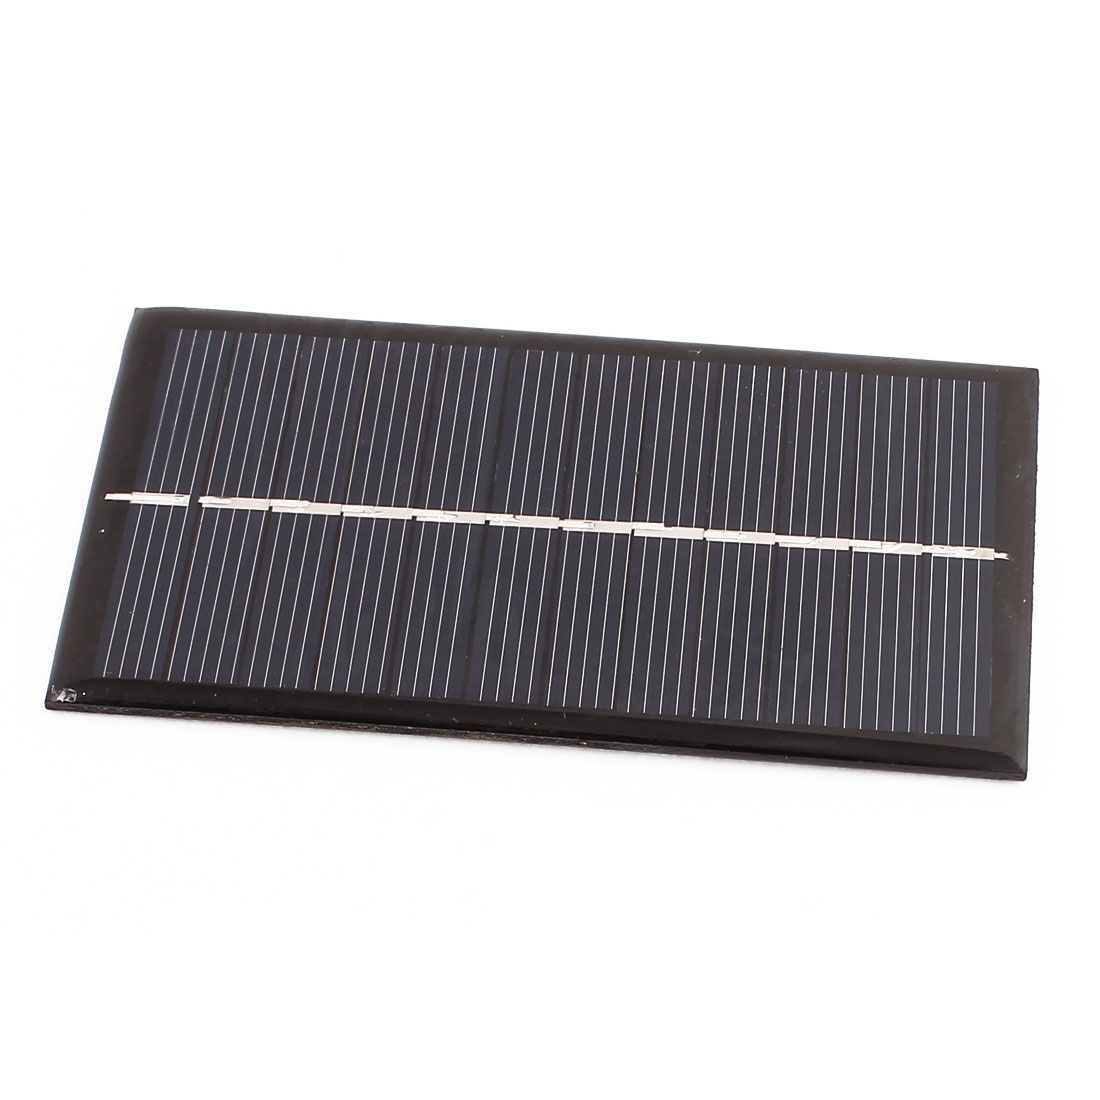 DC 6V 1W Rectangle Energy Saving Solar Cell Panel Module for Charger